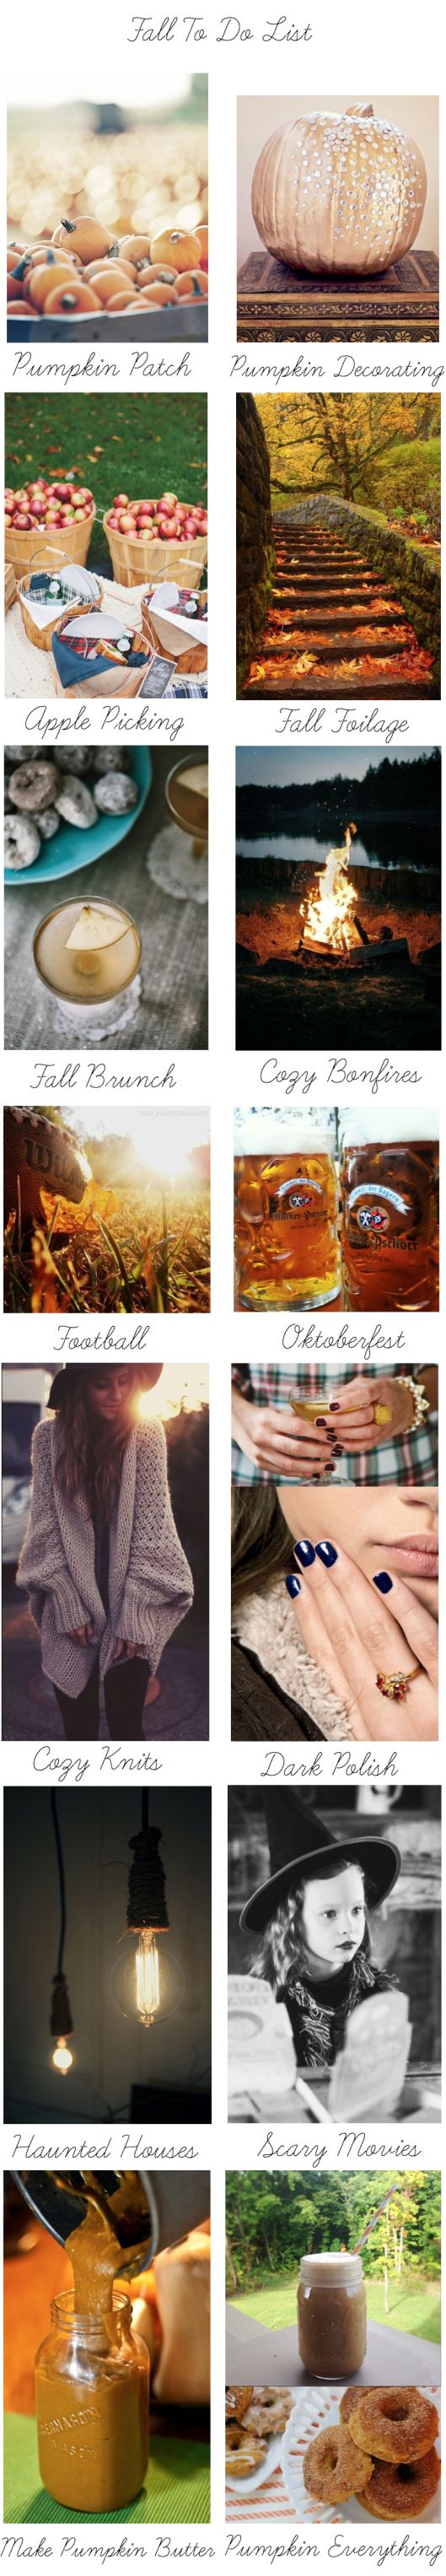 Fall HappyToDo List. Love autumn, enjoy with dear ones!